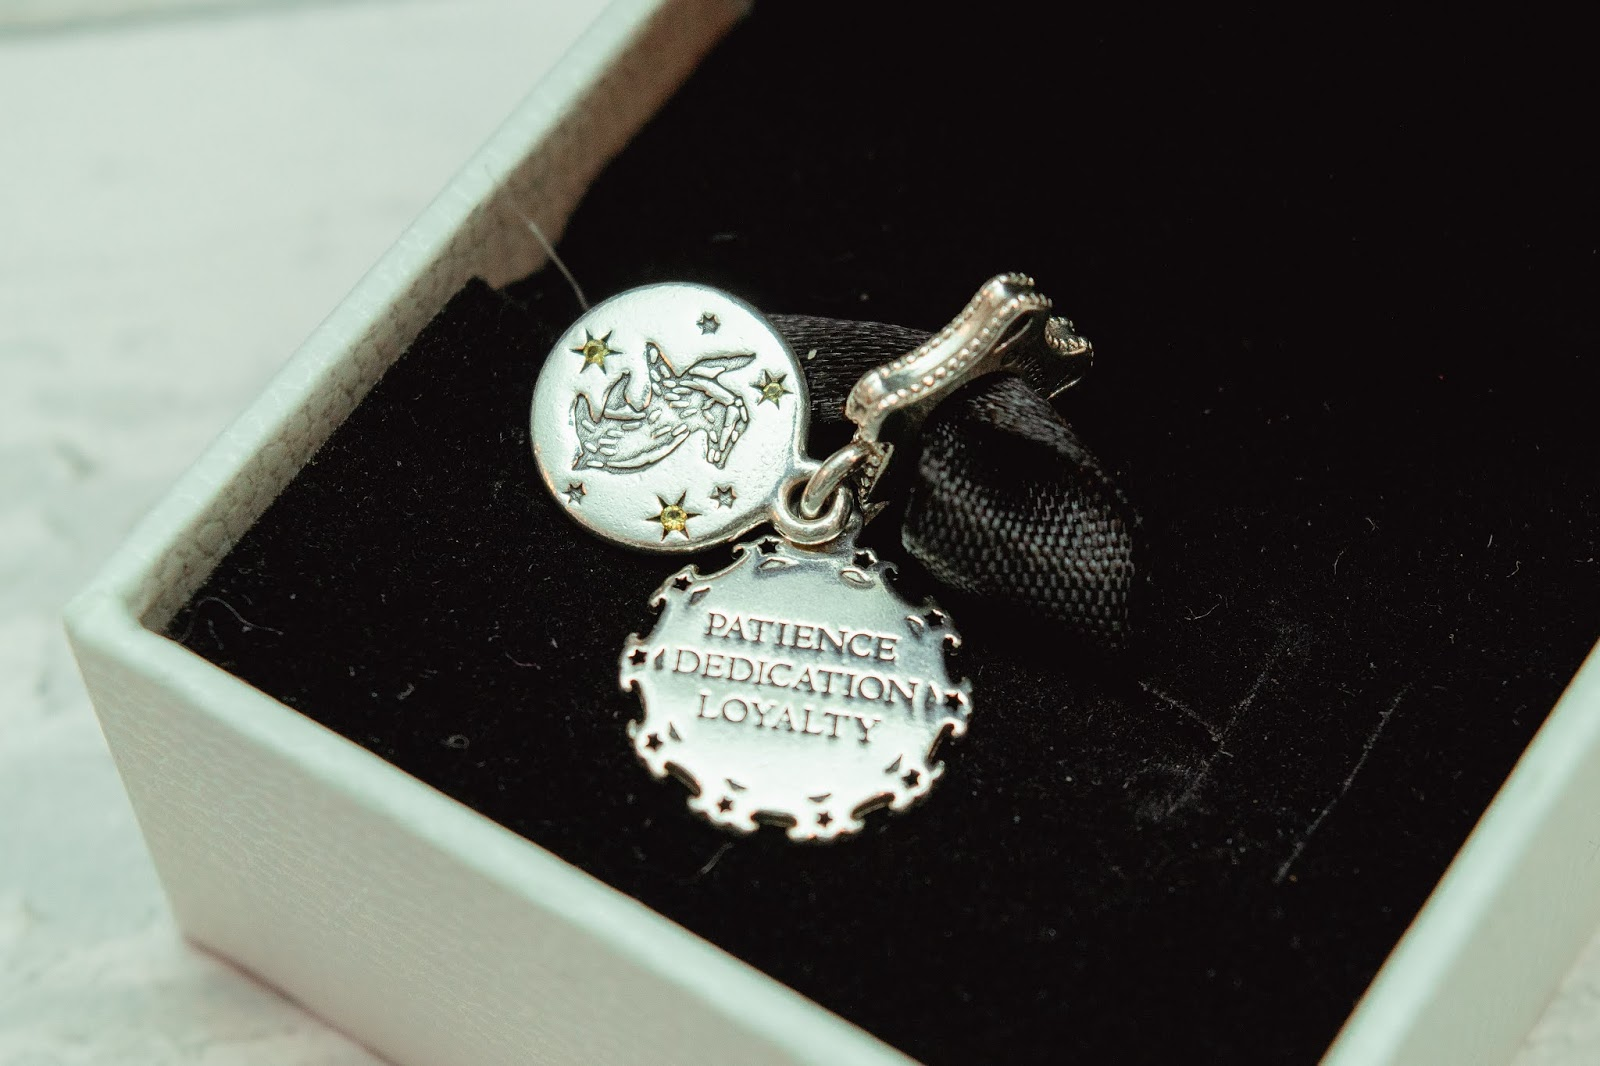 The two parts of the Pandora Hufflepuff charm with the qualities of a Hufflepuff member engraved on a side.